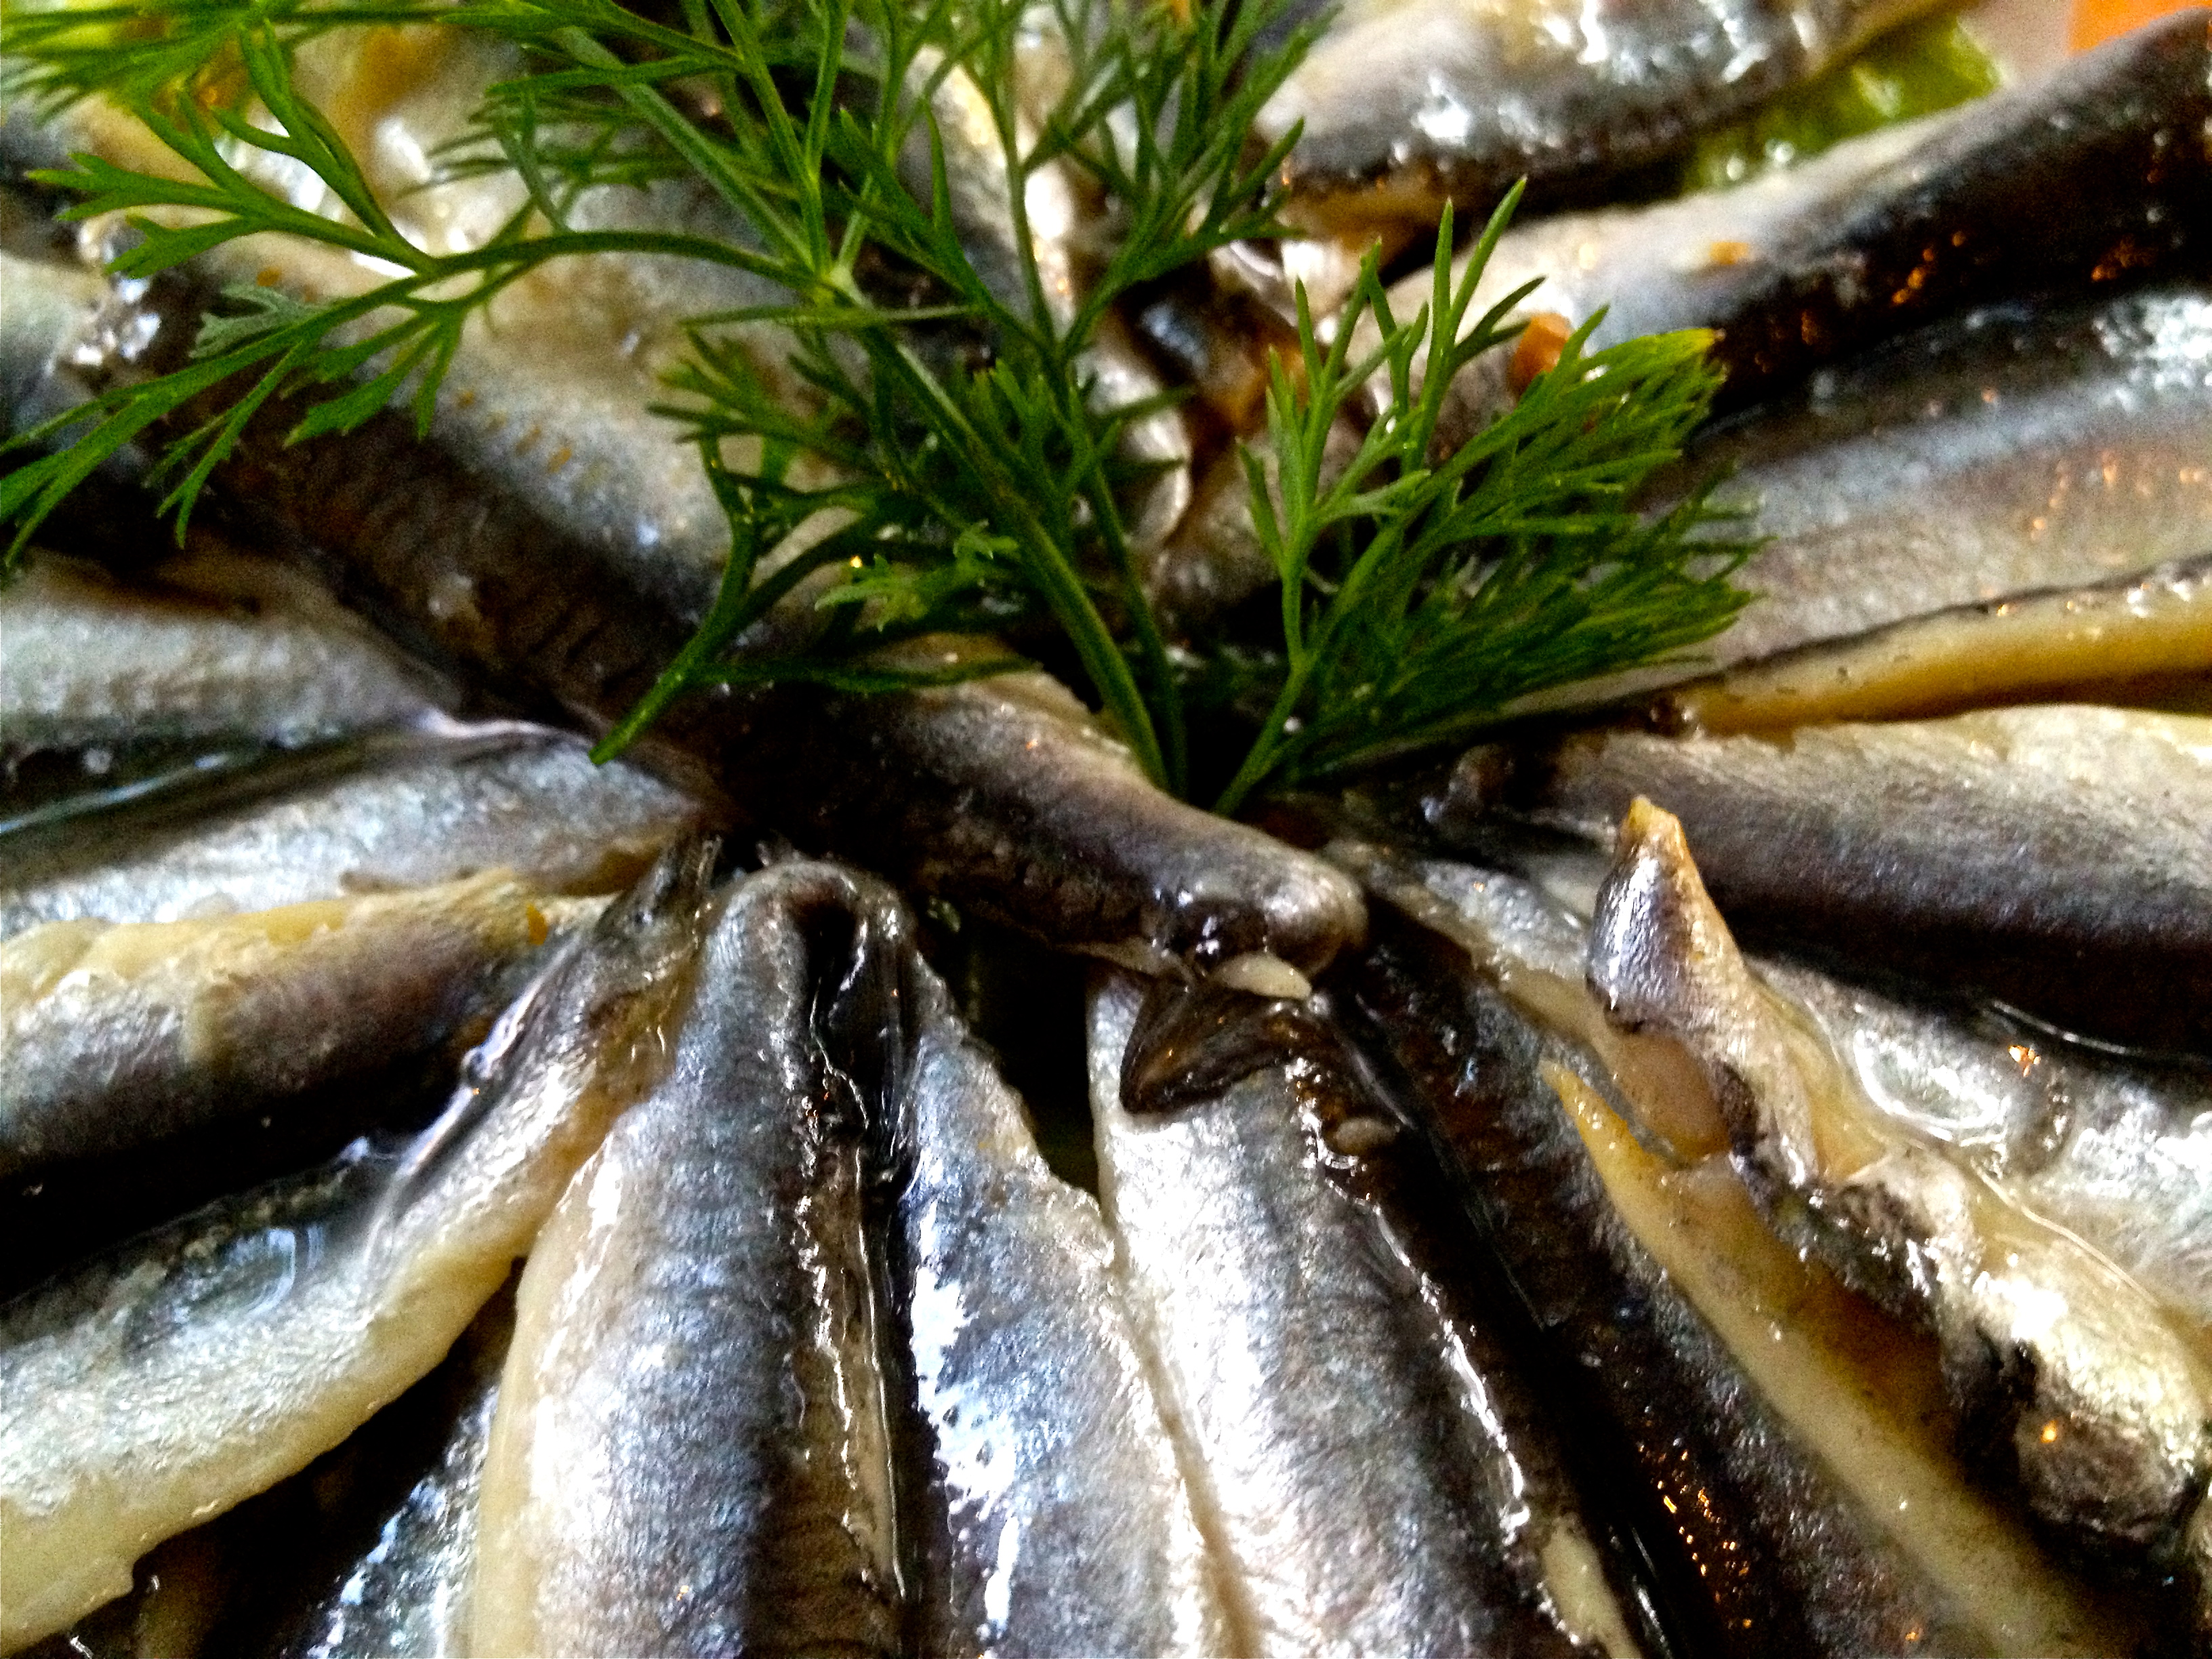 anchovies in oil with dill garnish